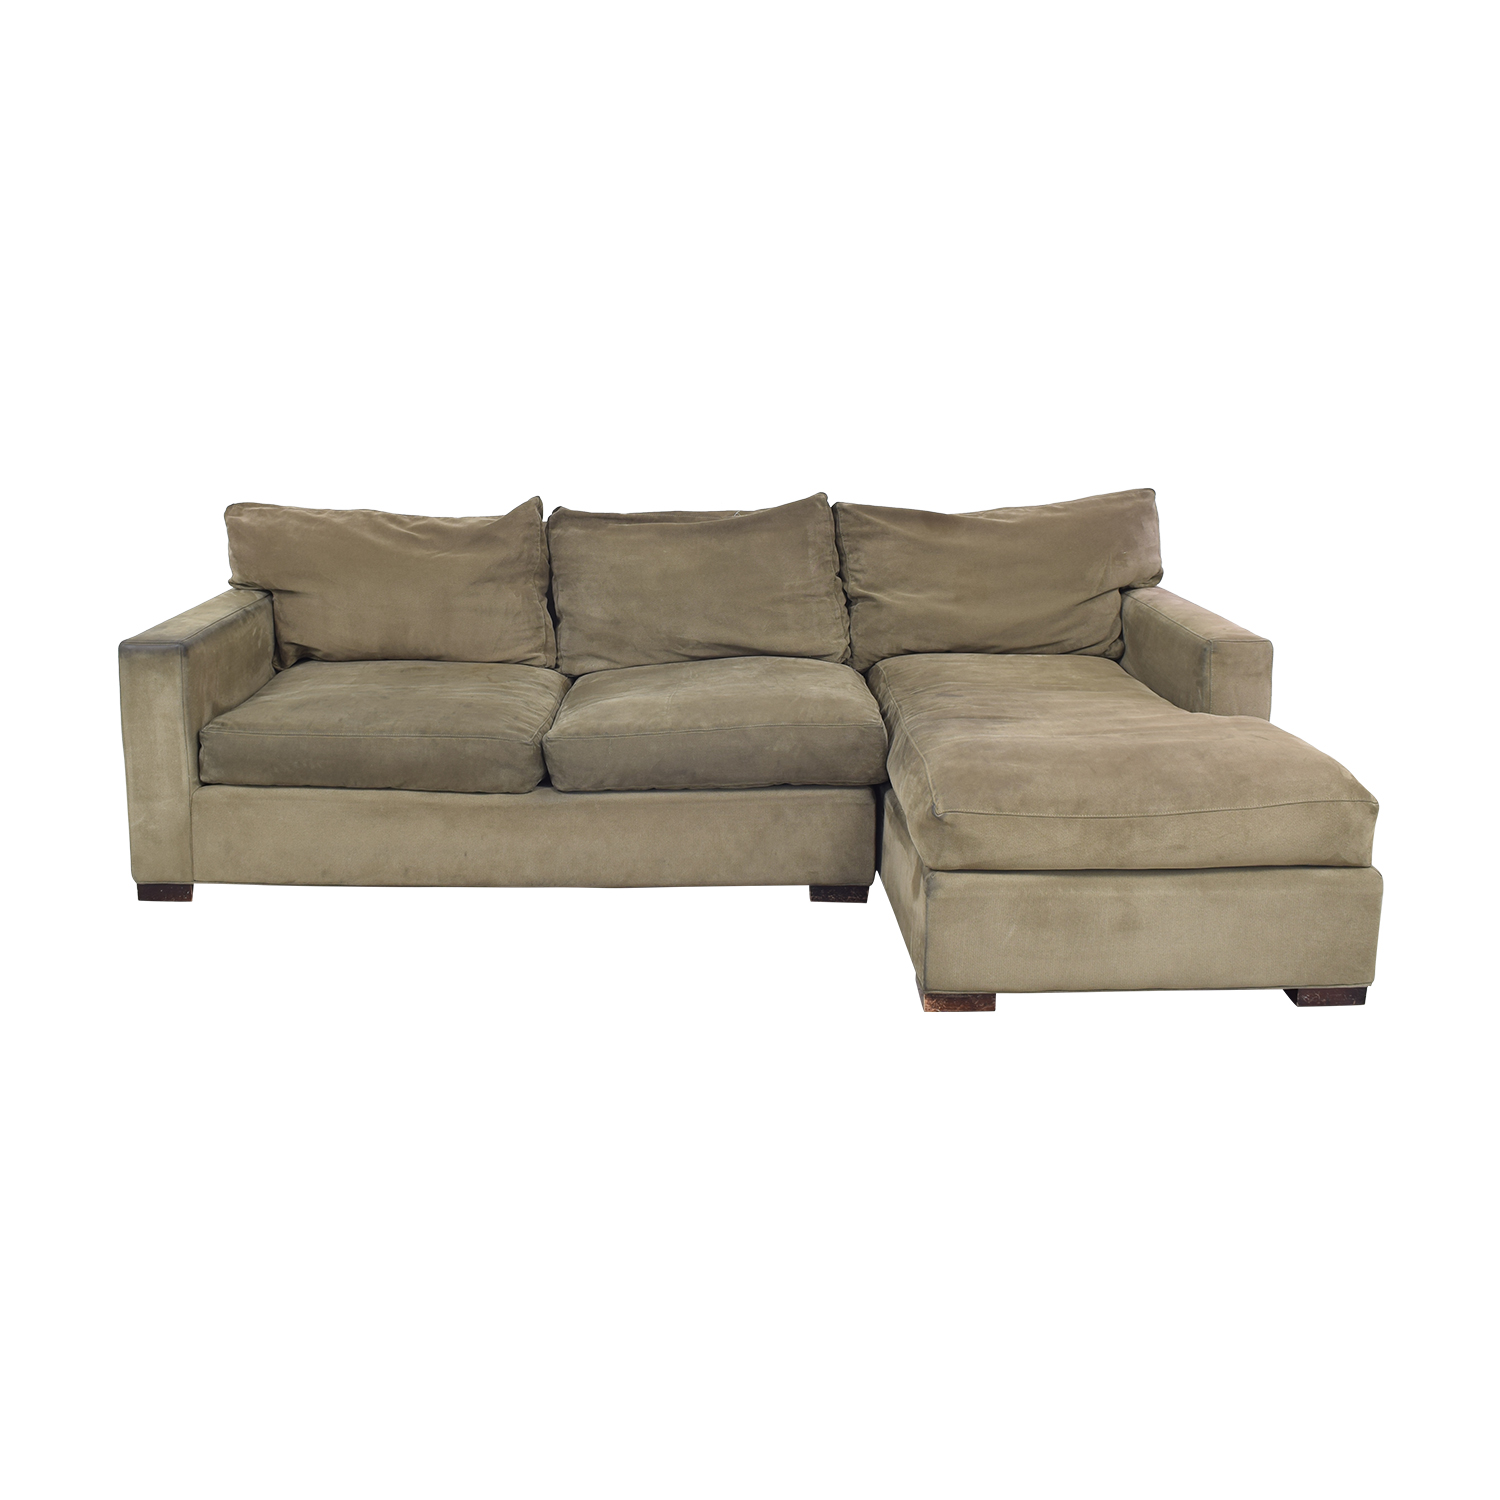 Crate & Barrel Axis Sofa / Sectionals